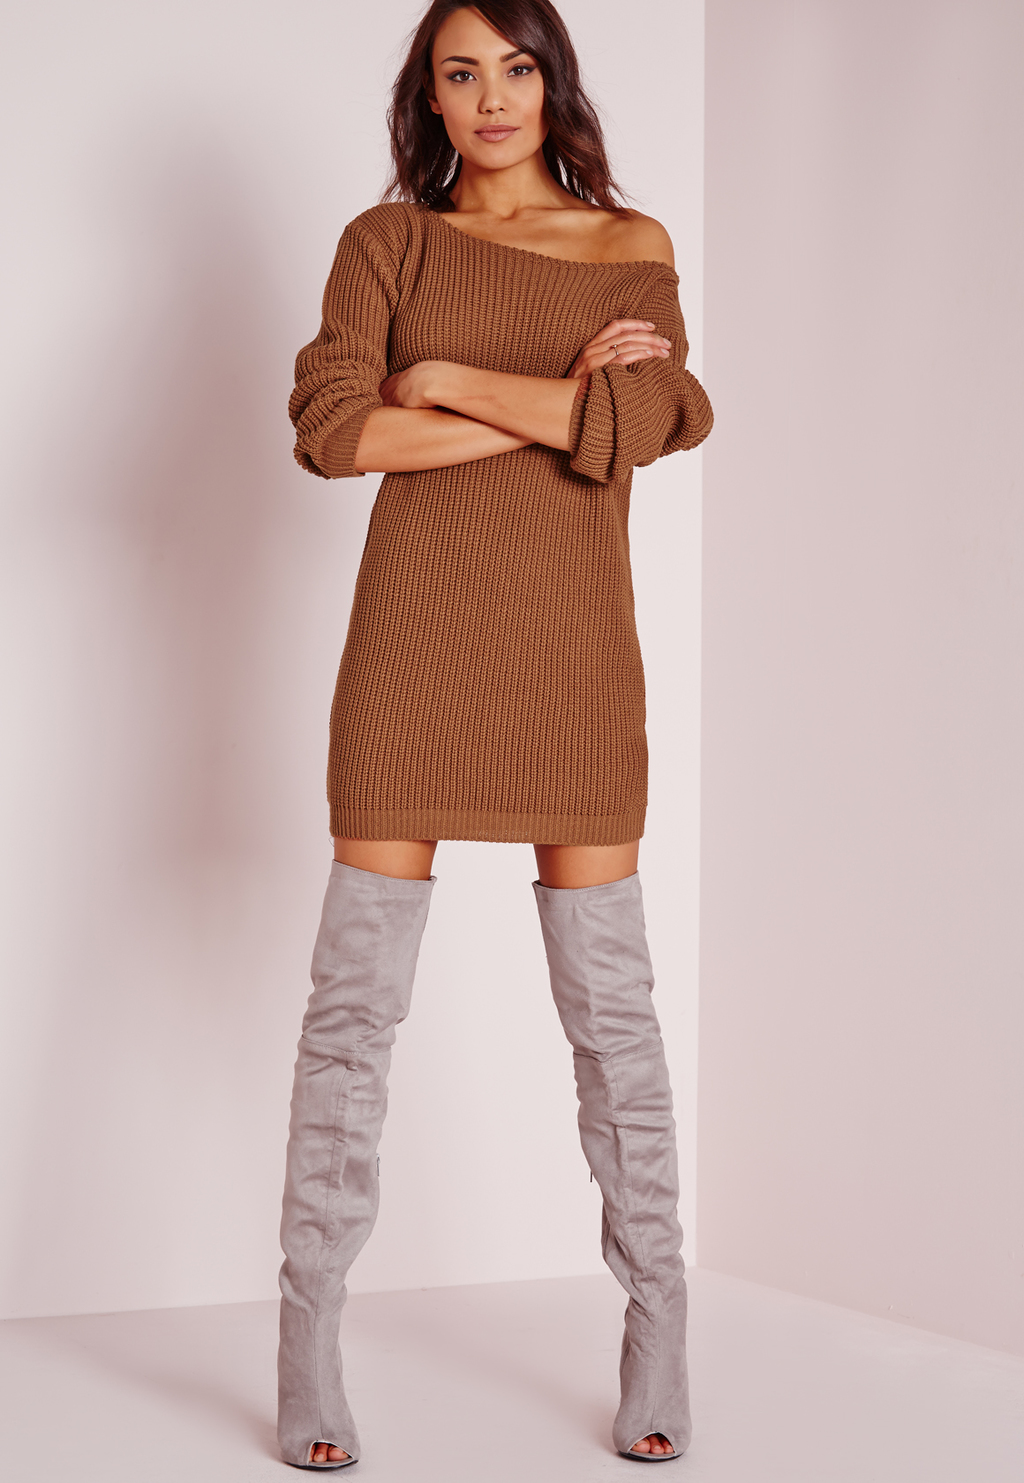 Off Shoulder Knitted Jumper Dress Brown, Tobacco - style: jumper dress; length: mid thigh; neckline: off the shoulder; pattern: plain; predominant colour: tan; occasions: evening; fit: body skimming; fibres: acrylic - 100%; sleeve length: long sleeve; sleeve style: standard; texture group: knits/crochet; pattern type: fabric; season: s/s 2016